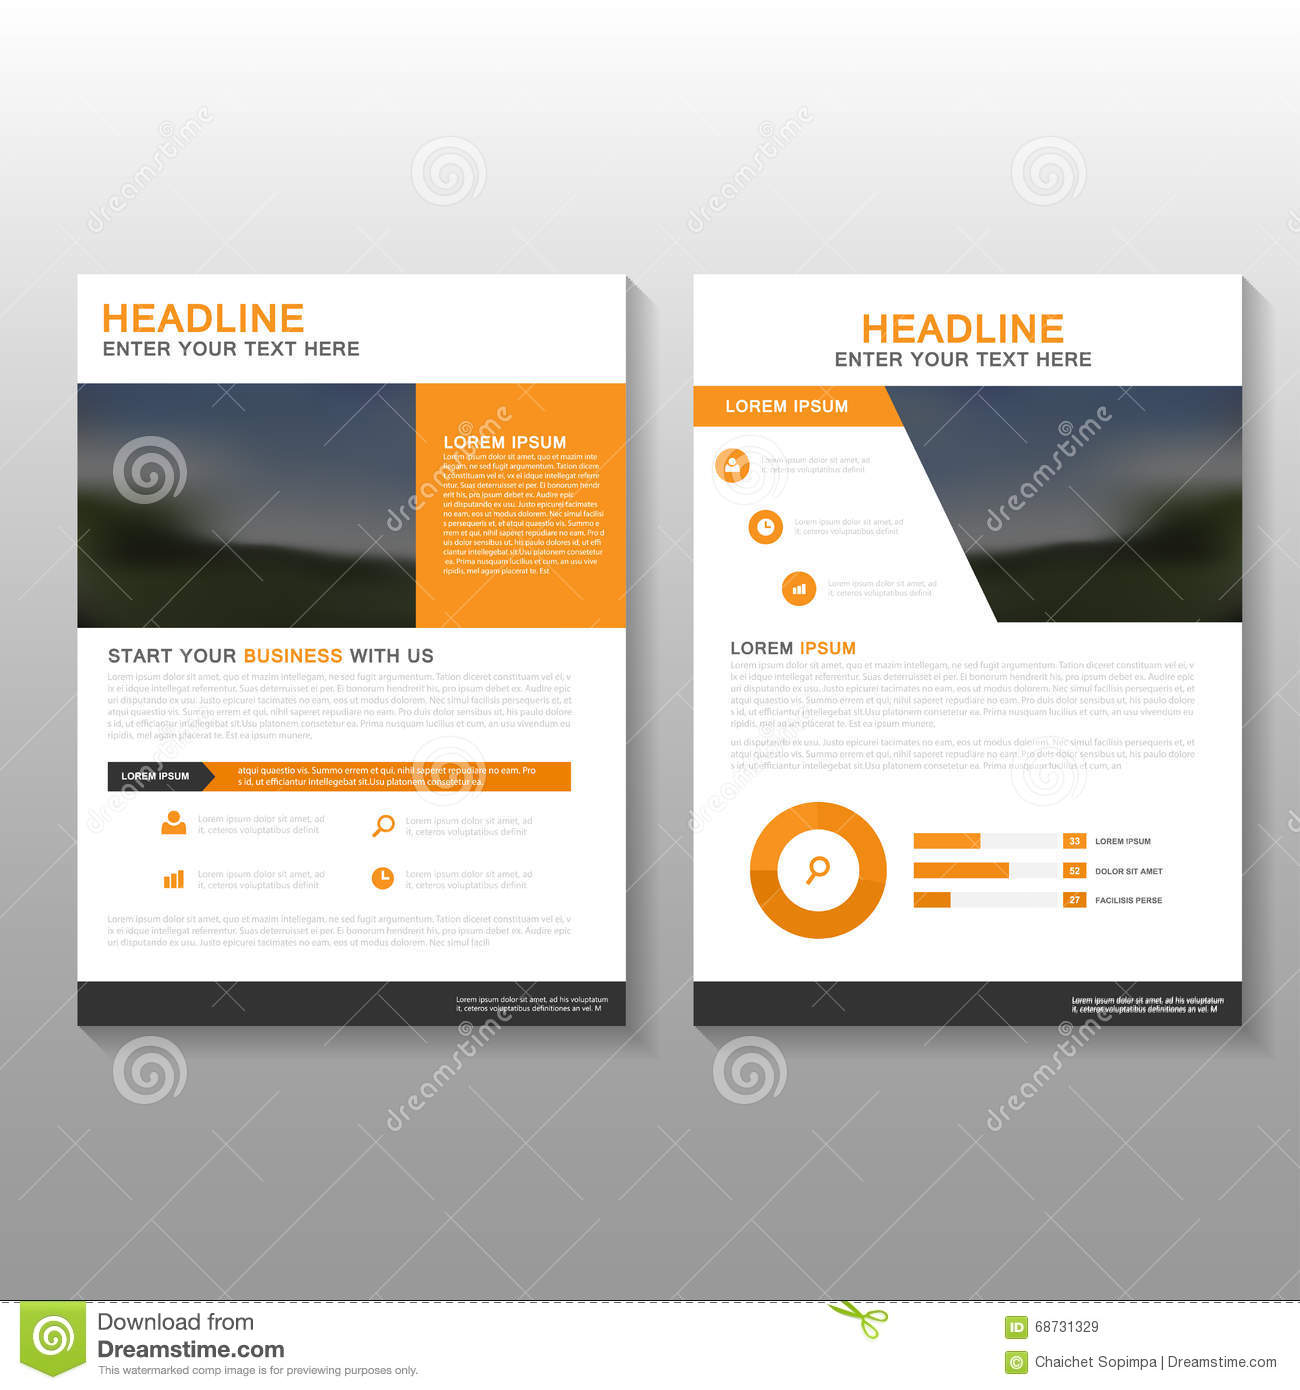 Sample free business flyer shefftunes legal forms and document templates free download sample free business flyer flashek